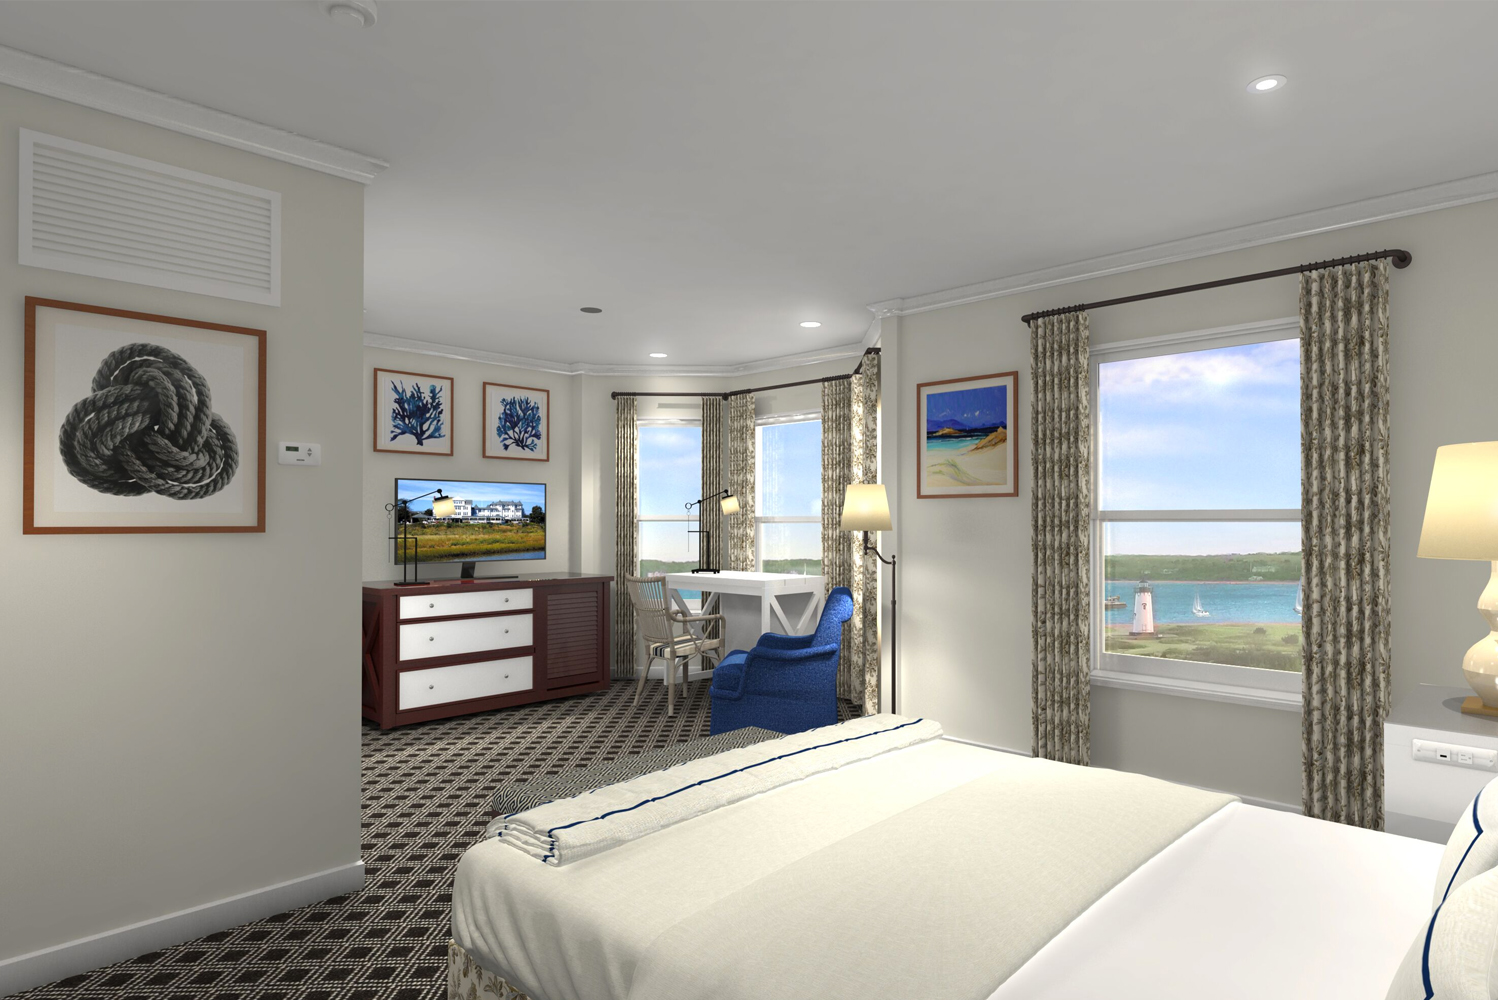 Harbor View Hotel, a property that opened in Martha's Vineyard 128 years ago, is slated to reopen on May 1 following a top-to-bottom renovation.